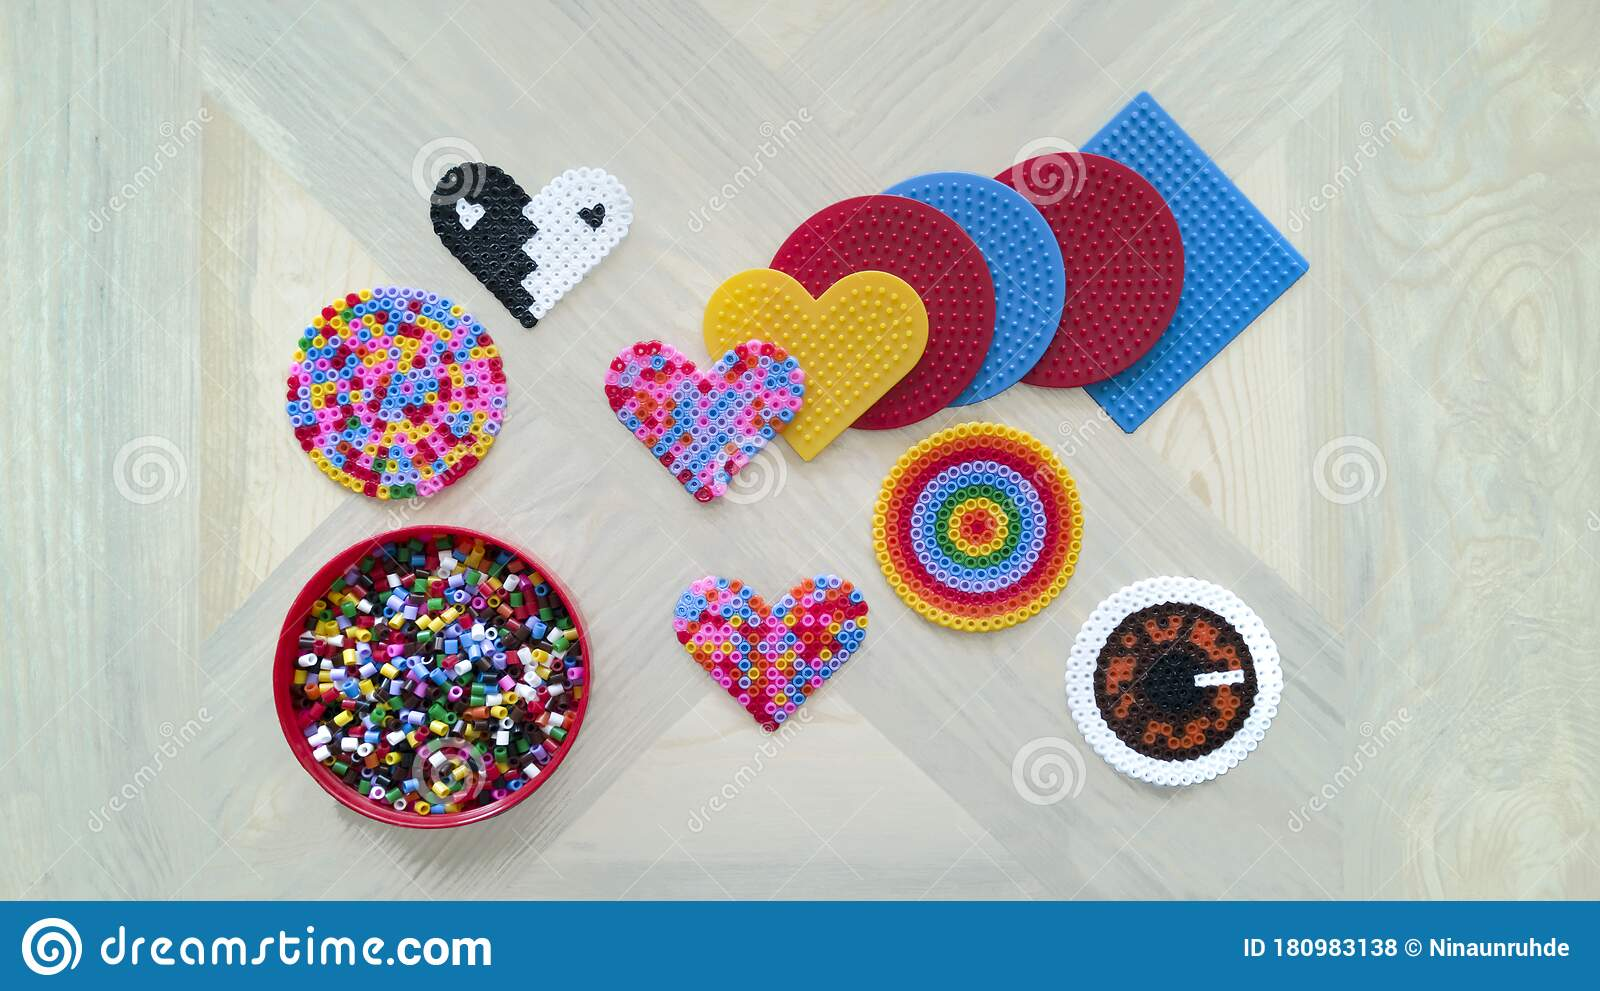 Mosaic Pins Photos   Free & Royalty Free Stock Photos from Dreamstime